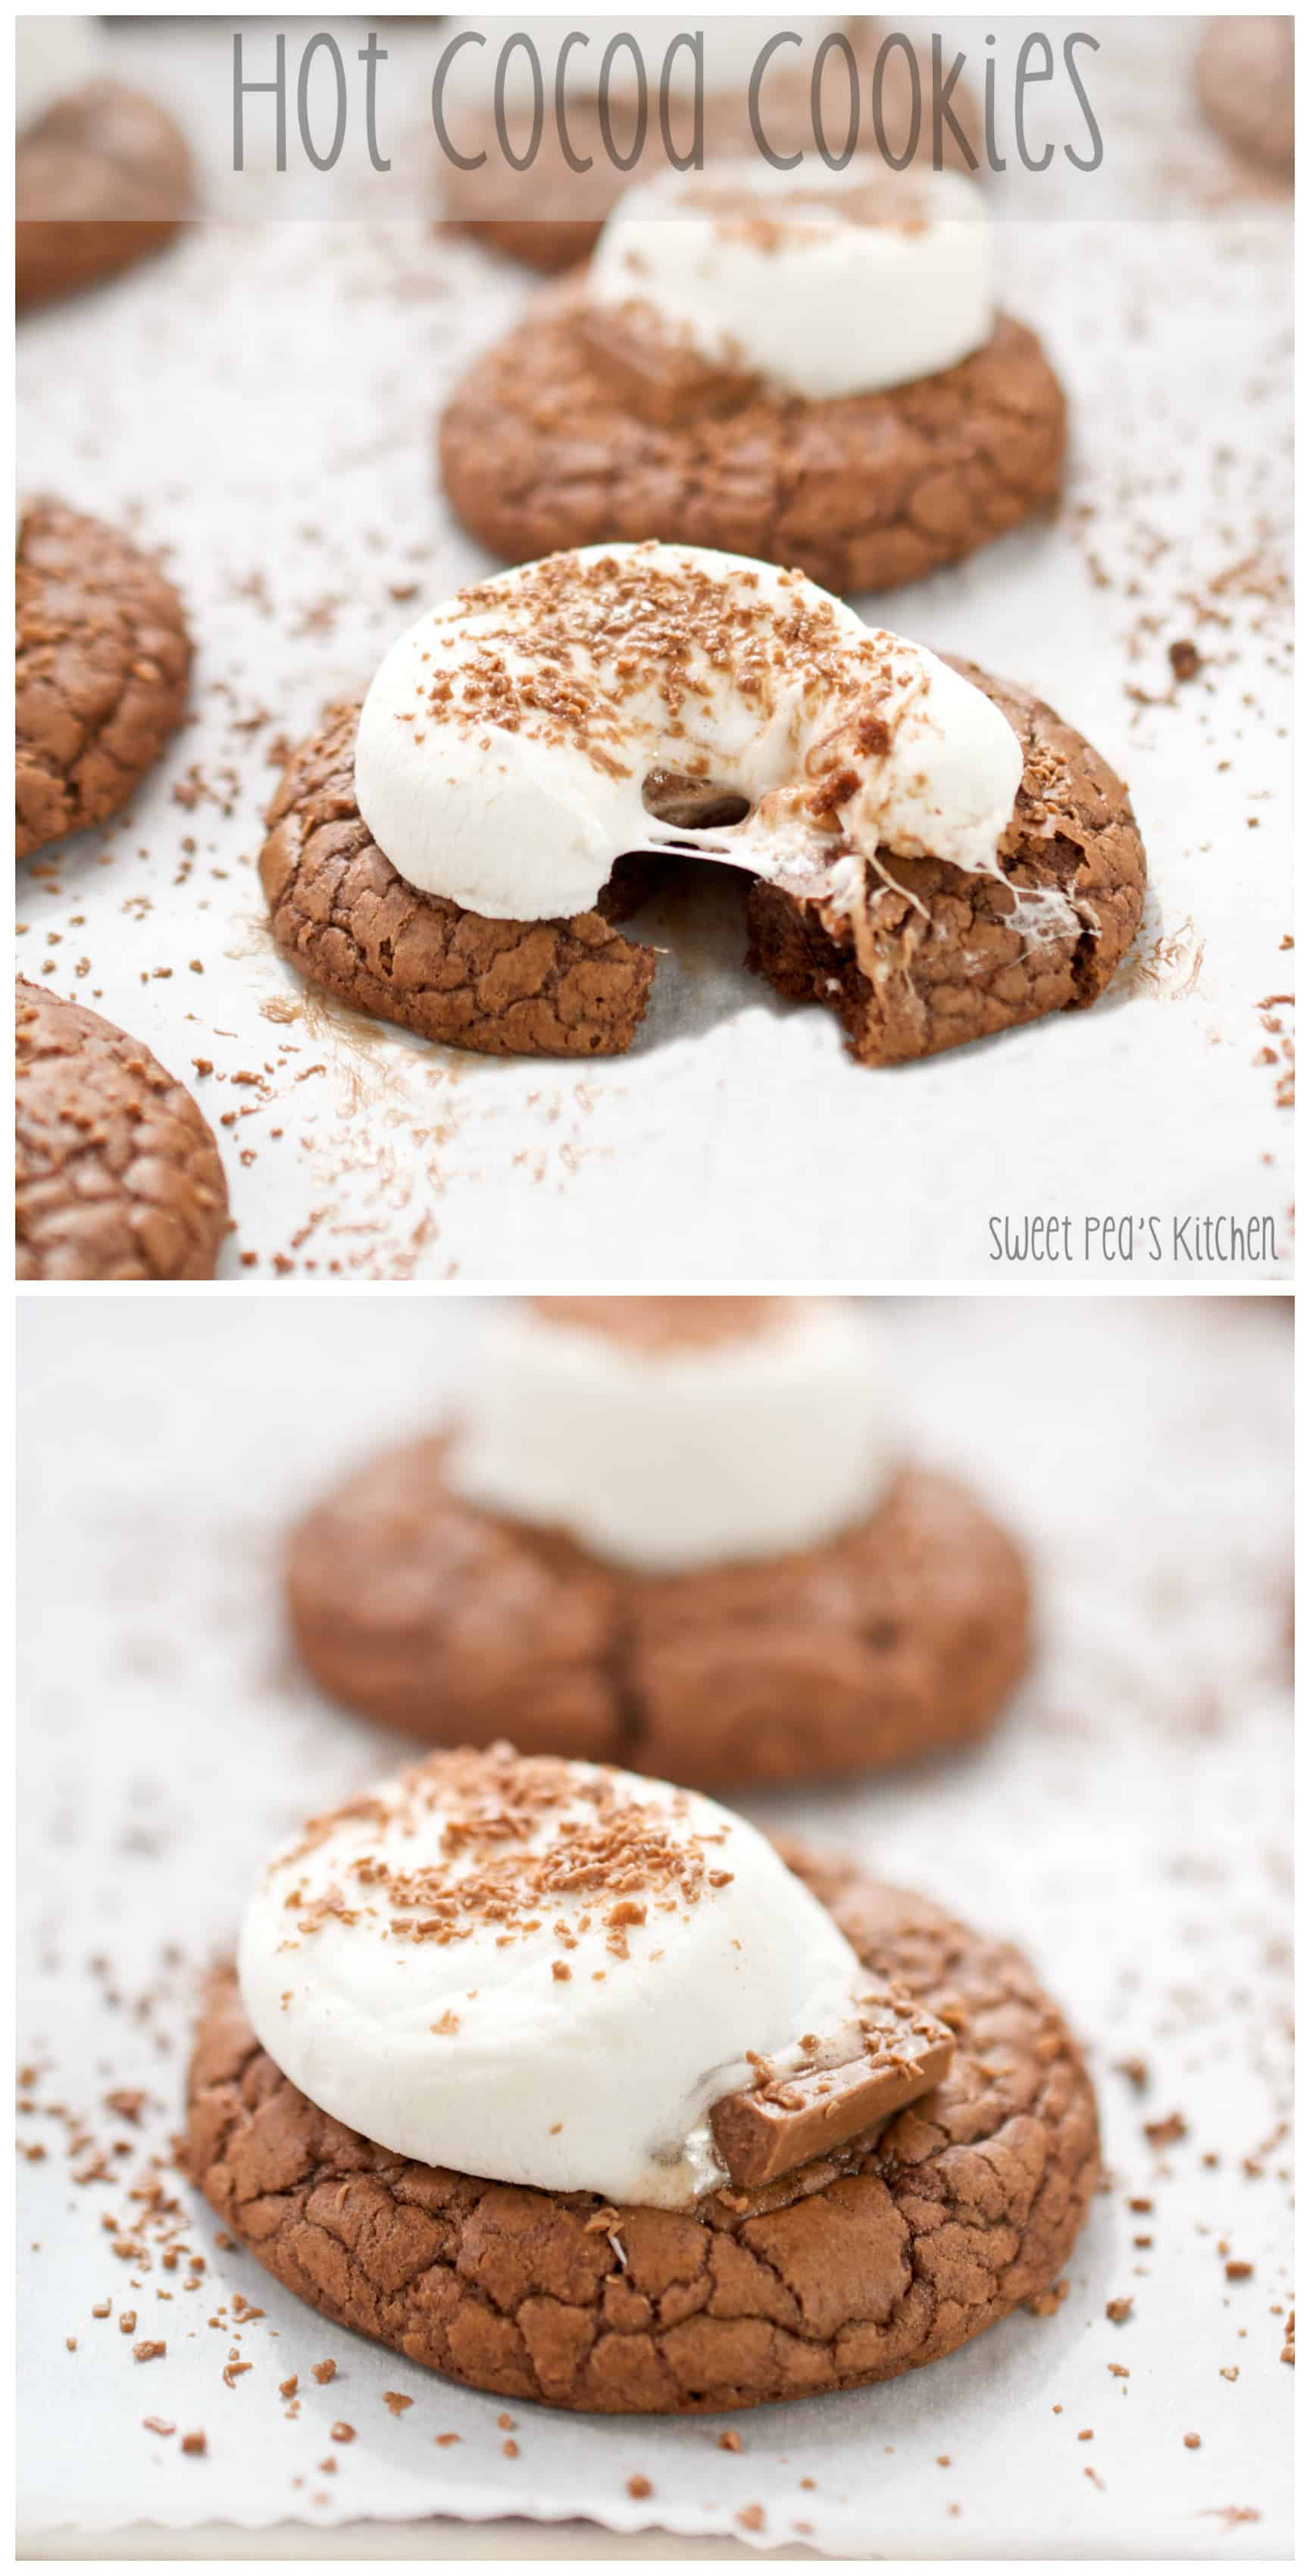 Hot Cocoa Cookies - PIN Image